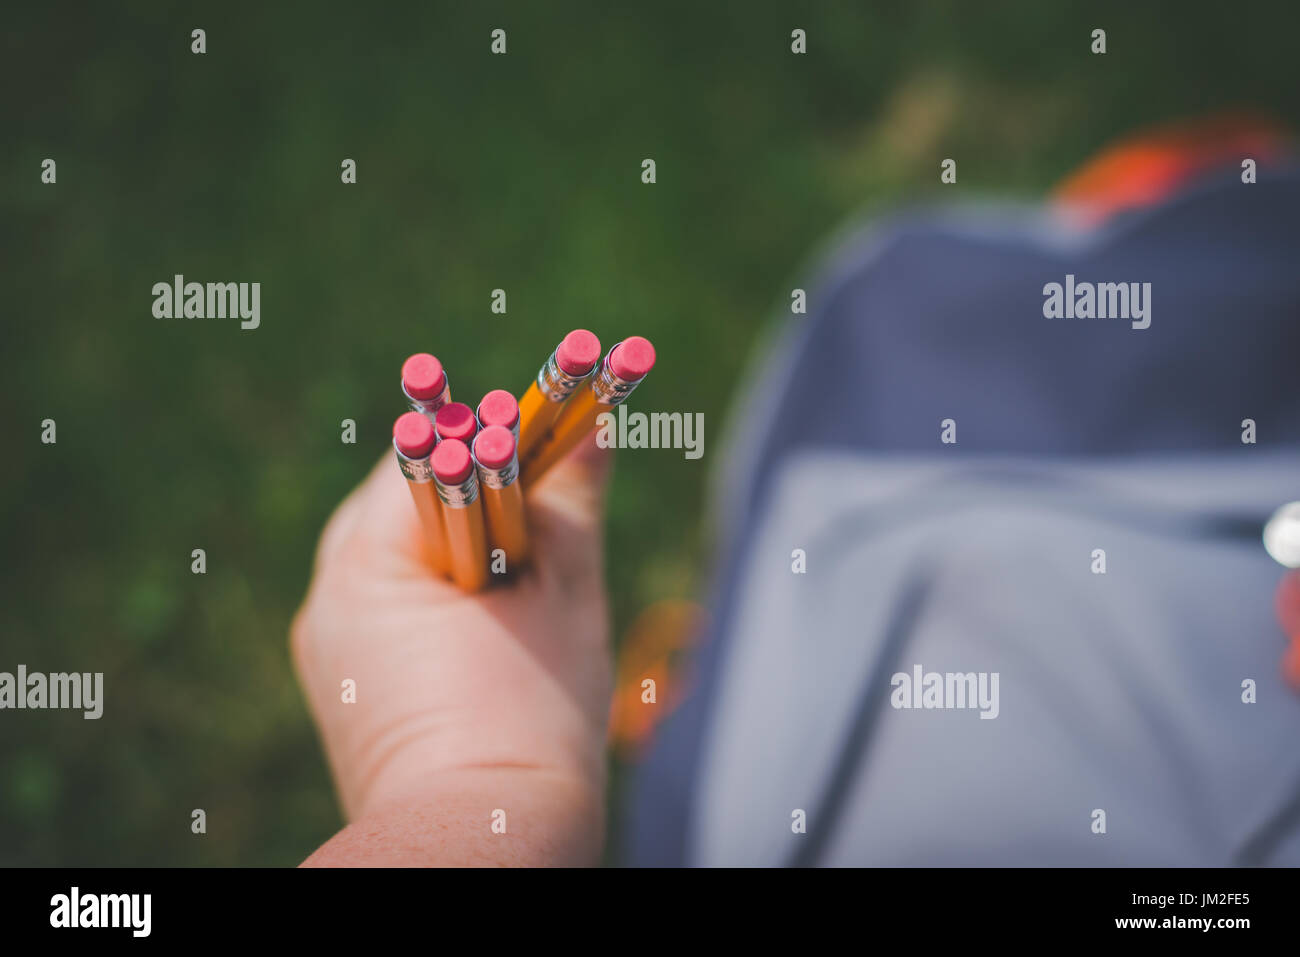 Hands holding school pencils with erasers. - Stock Image